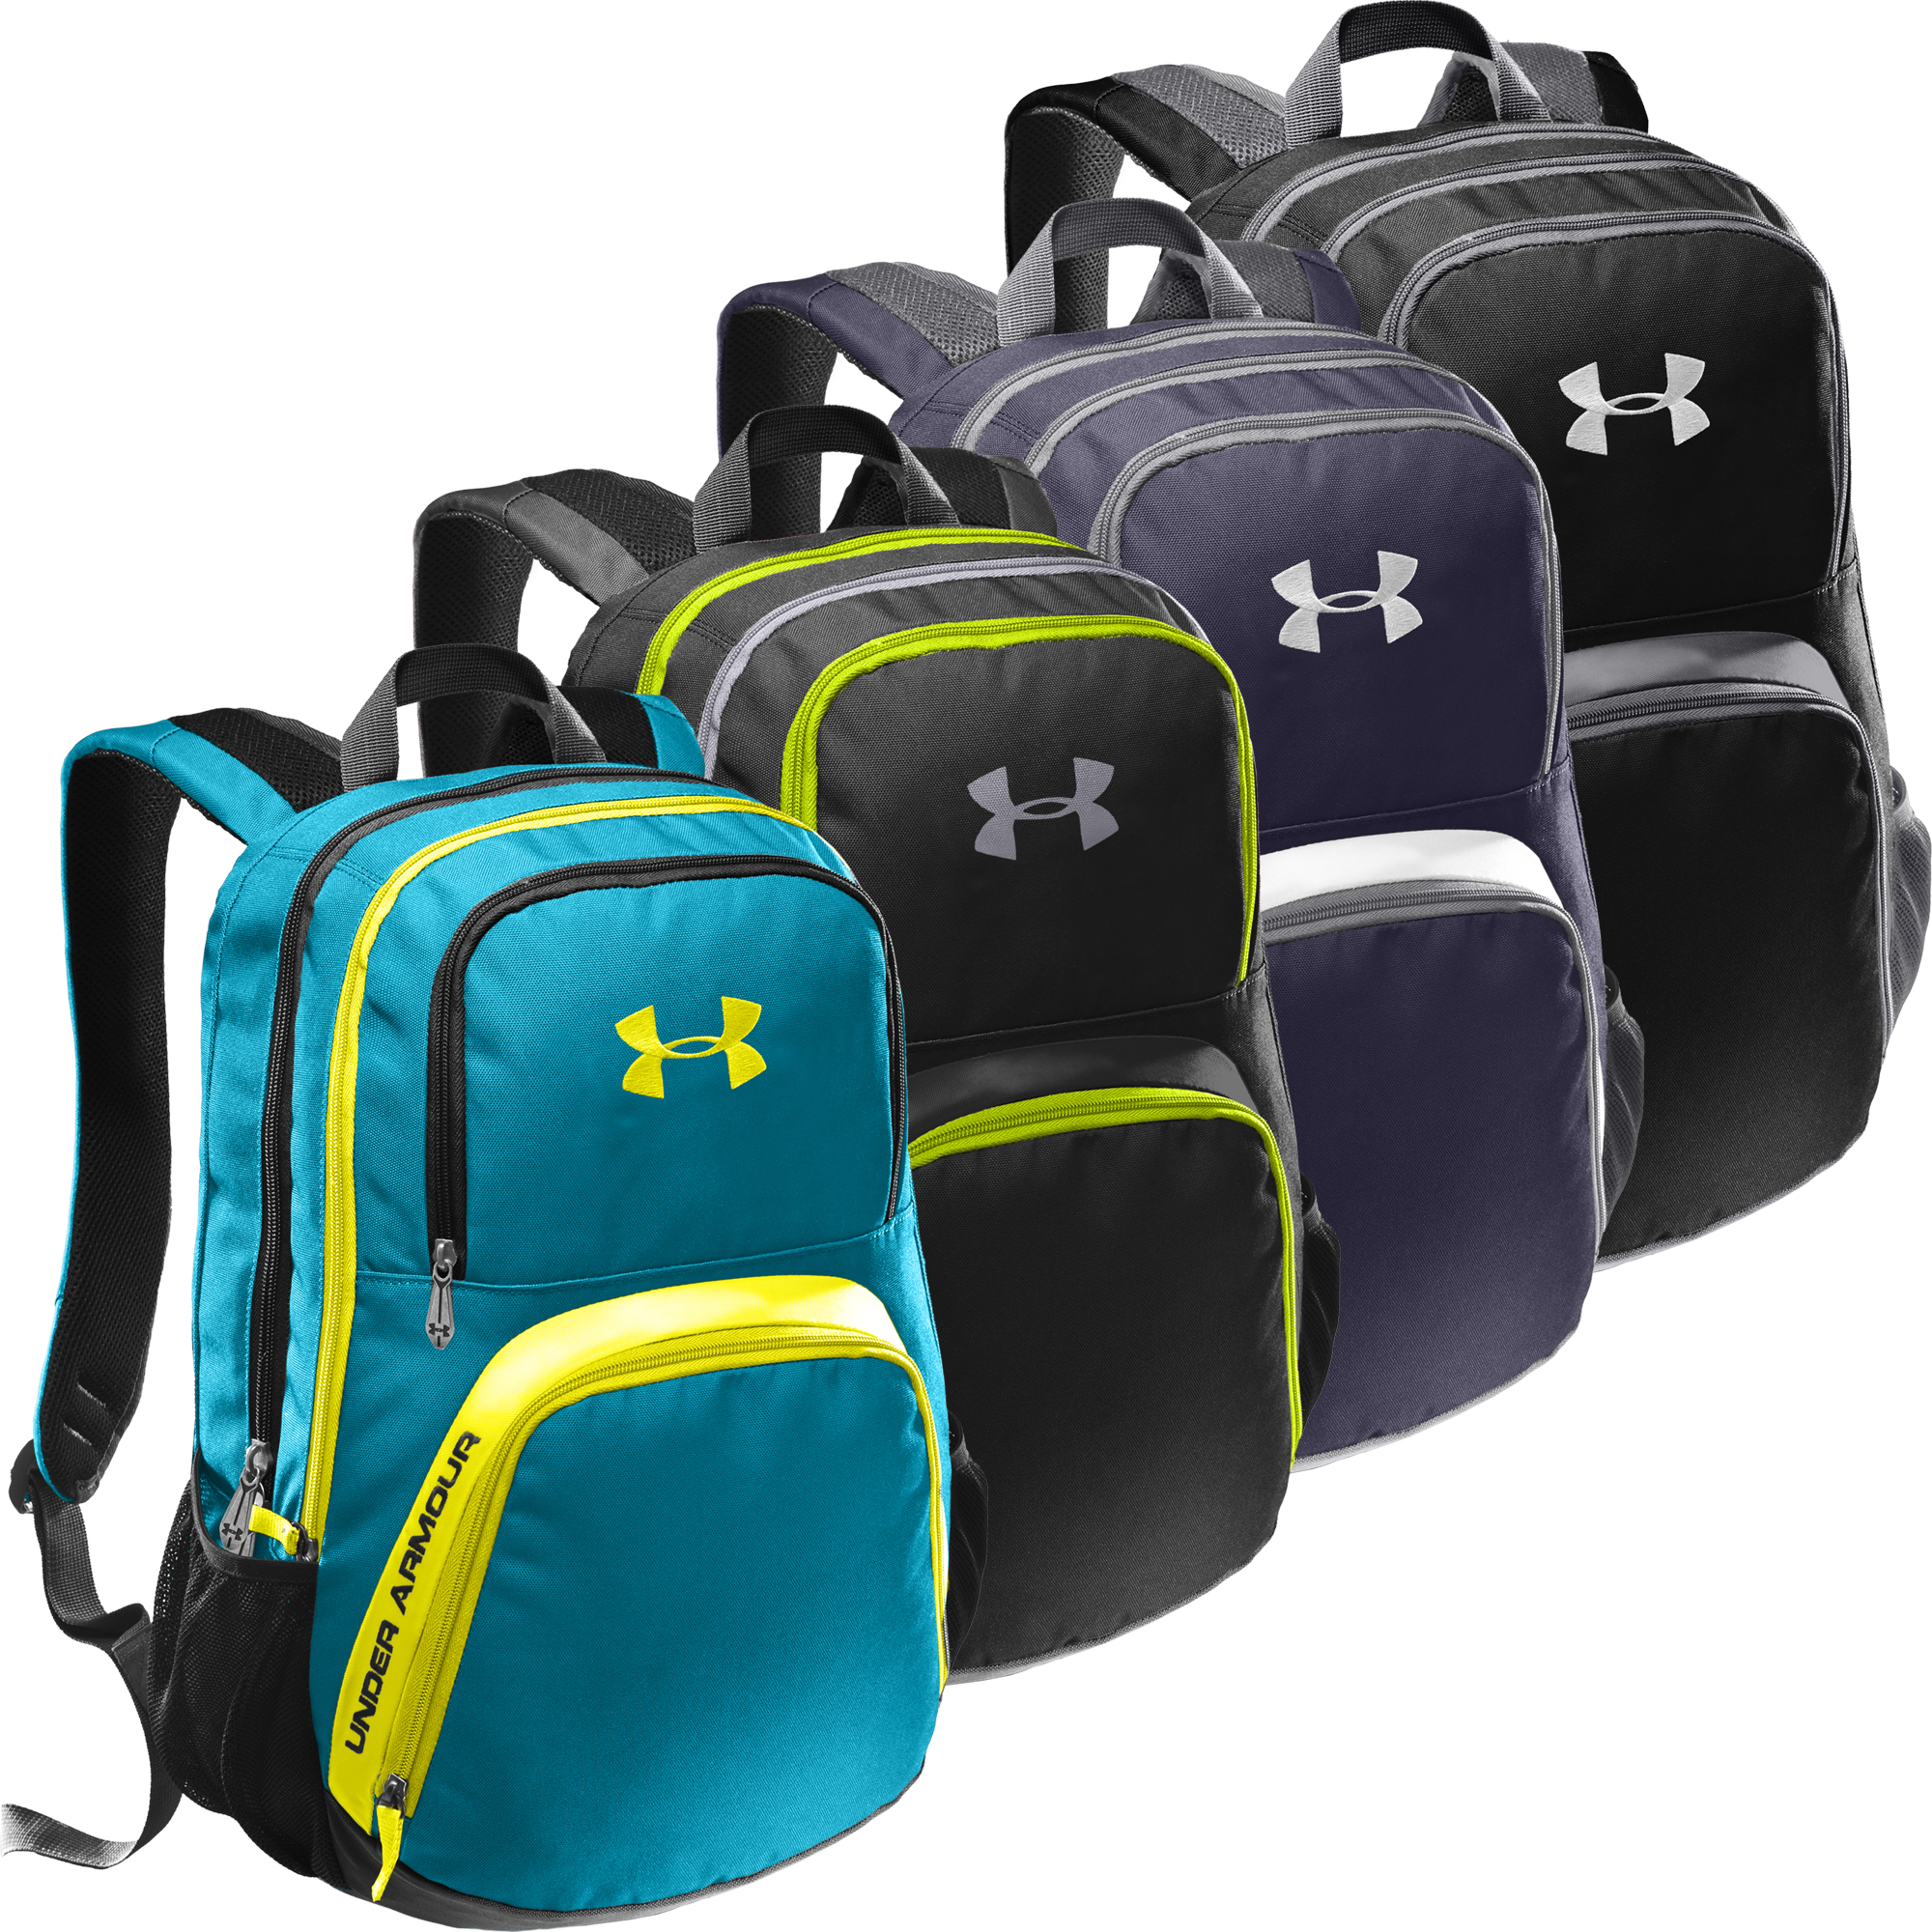 c8a0707d72 under armour victory backpack cheap > OFF50% The Largest Catalog Discounts